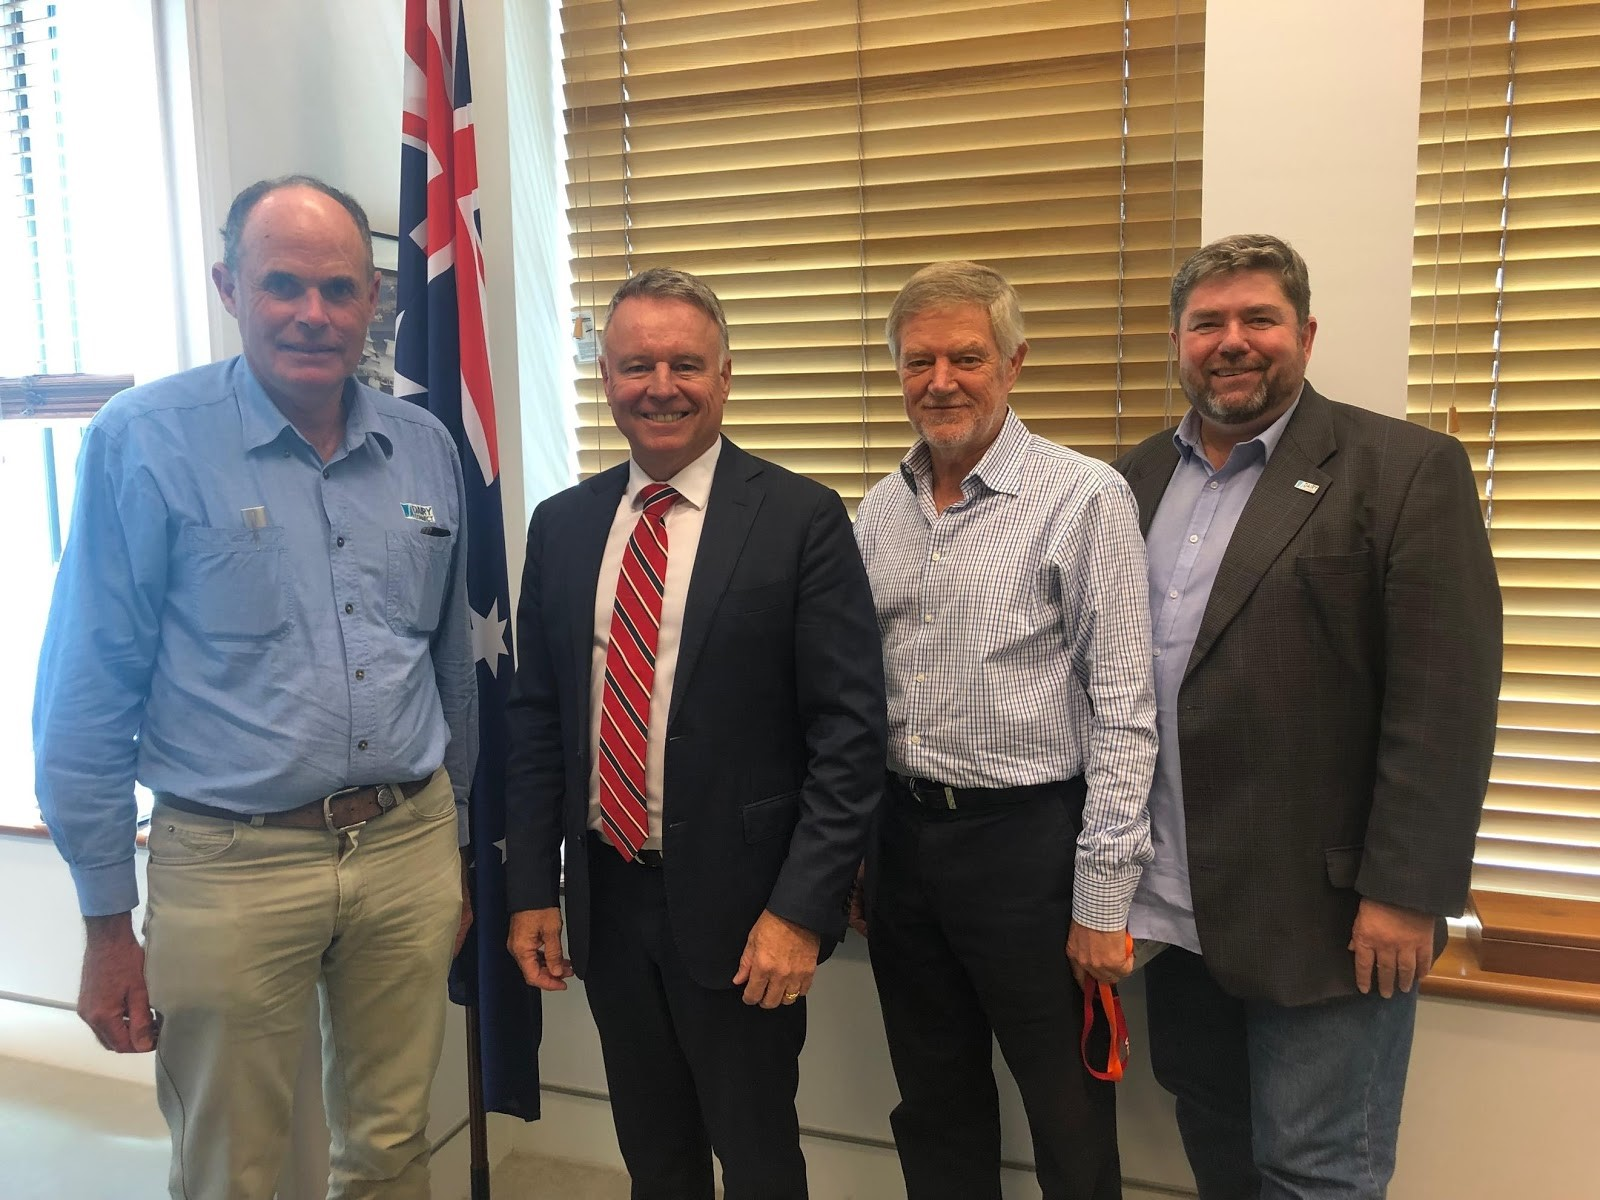 L-R: Graham Forbes, DC Farmers Group President & dairy farmer, Gloucester; the Hon Joel Fitzgibbon MP; George Davey AM, DC Chairman; Shaughn Morgan, DC CEO